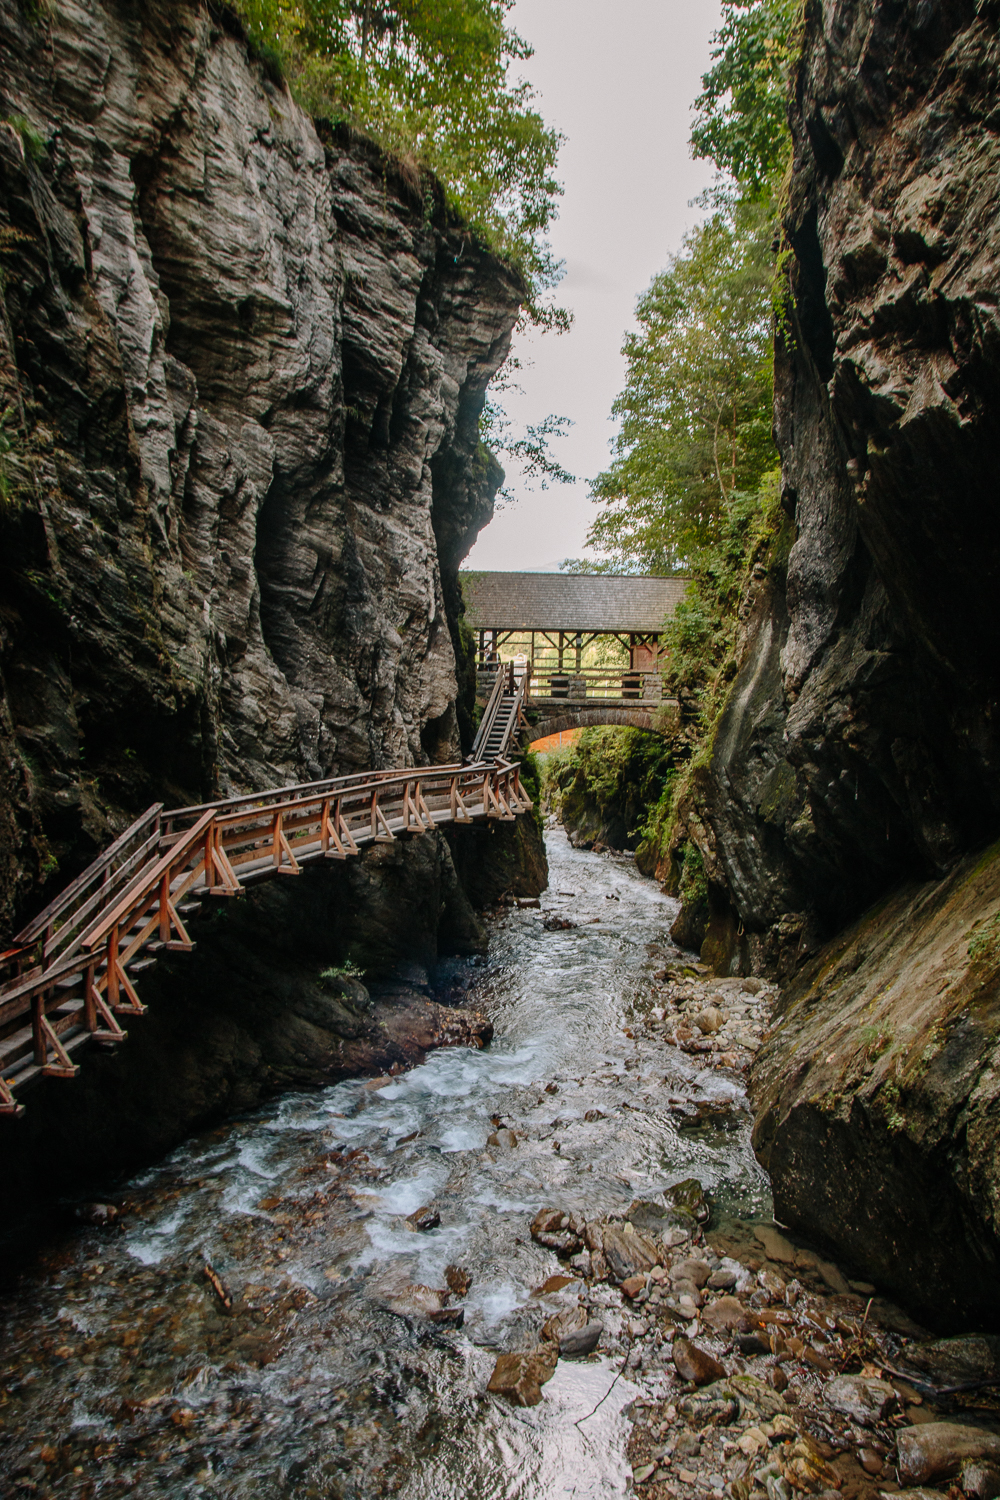 Sigmund Thun Gorge at Zell am See, Austria